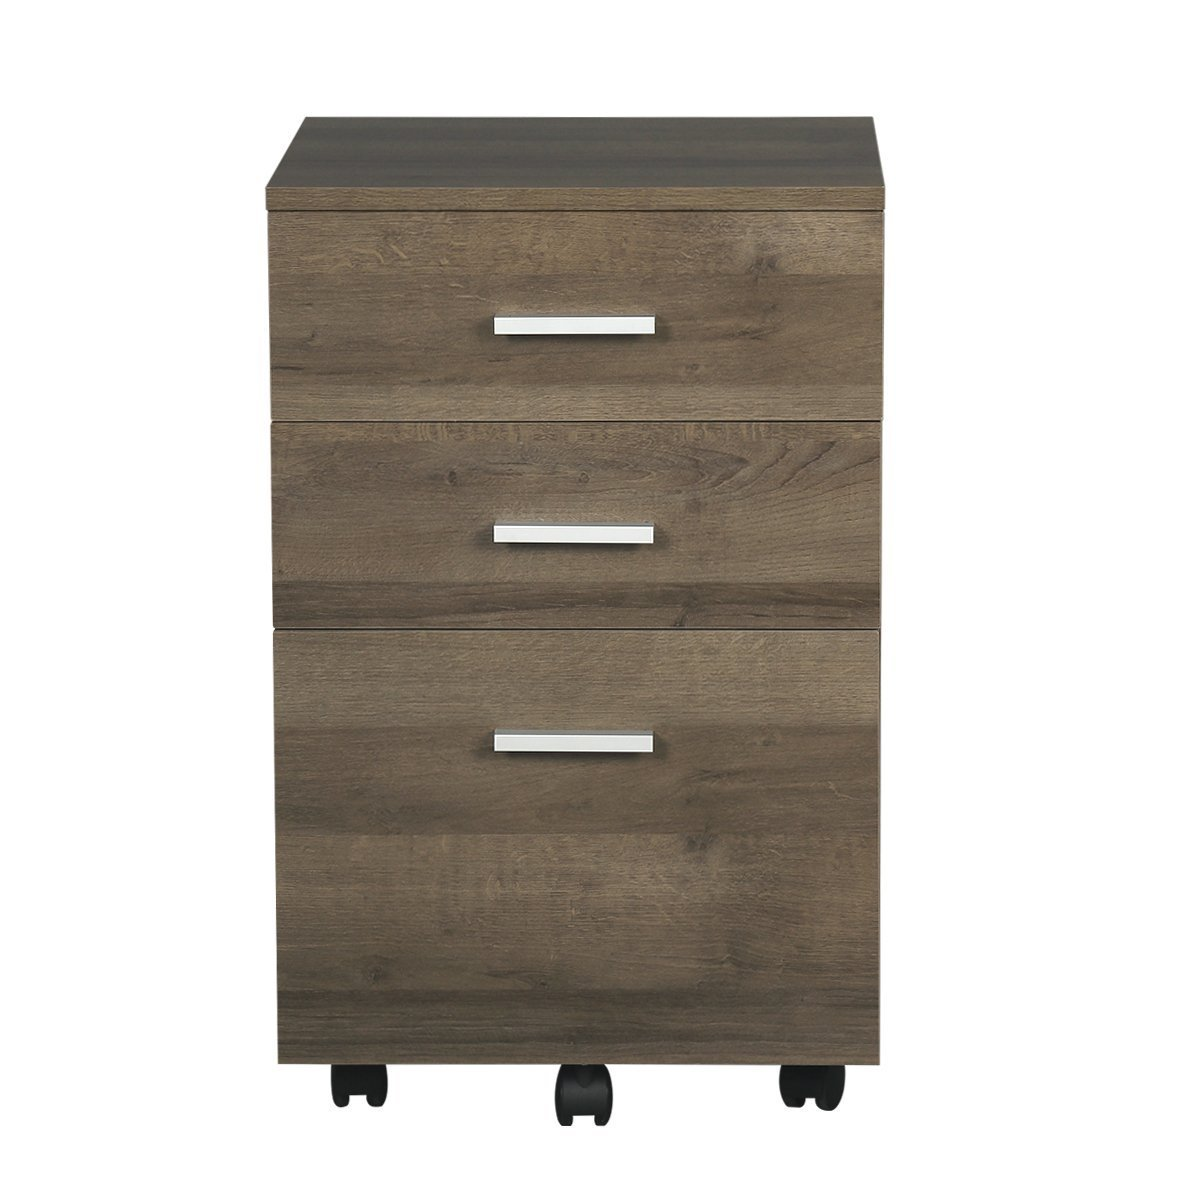 DEVAISE 3 Drawer Lateral Wood Mobile Filing Cabinet, Letter Size /A4, Gray Oak